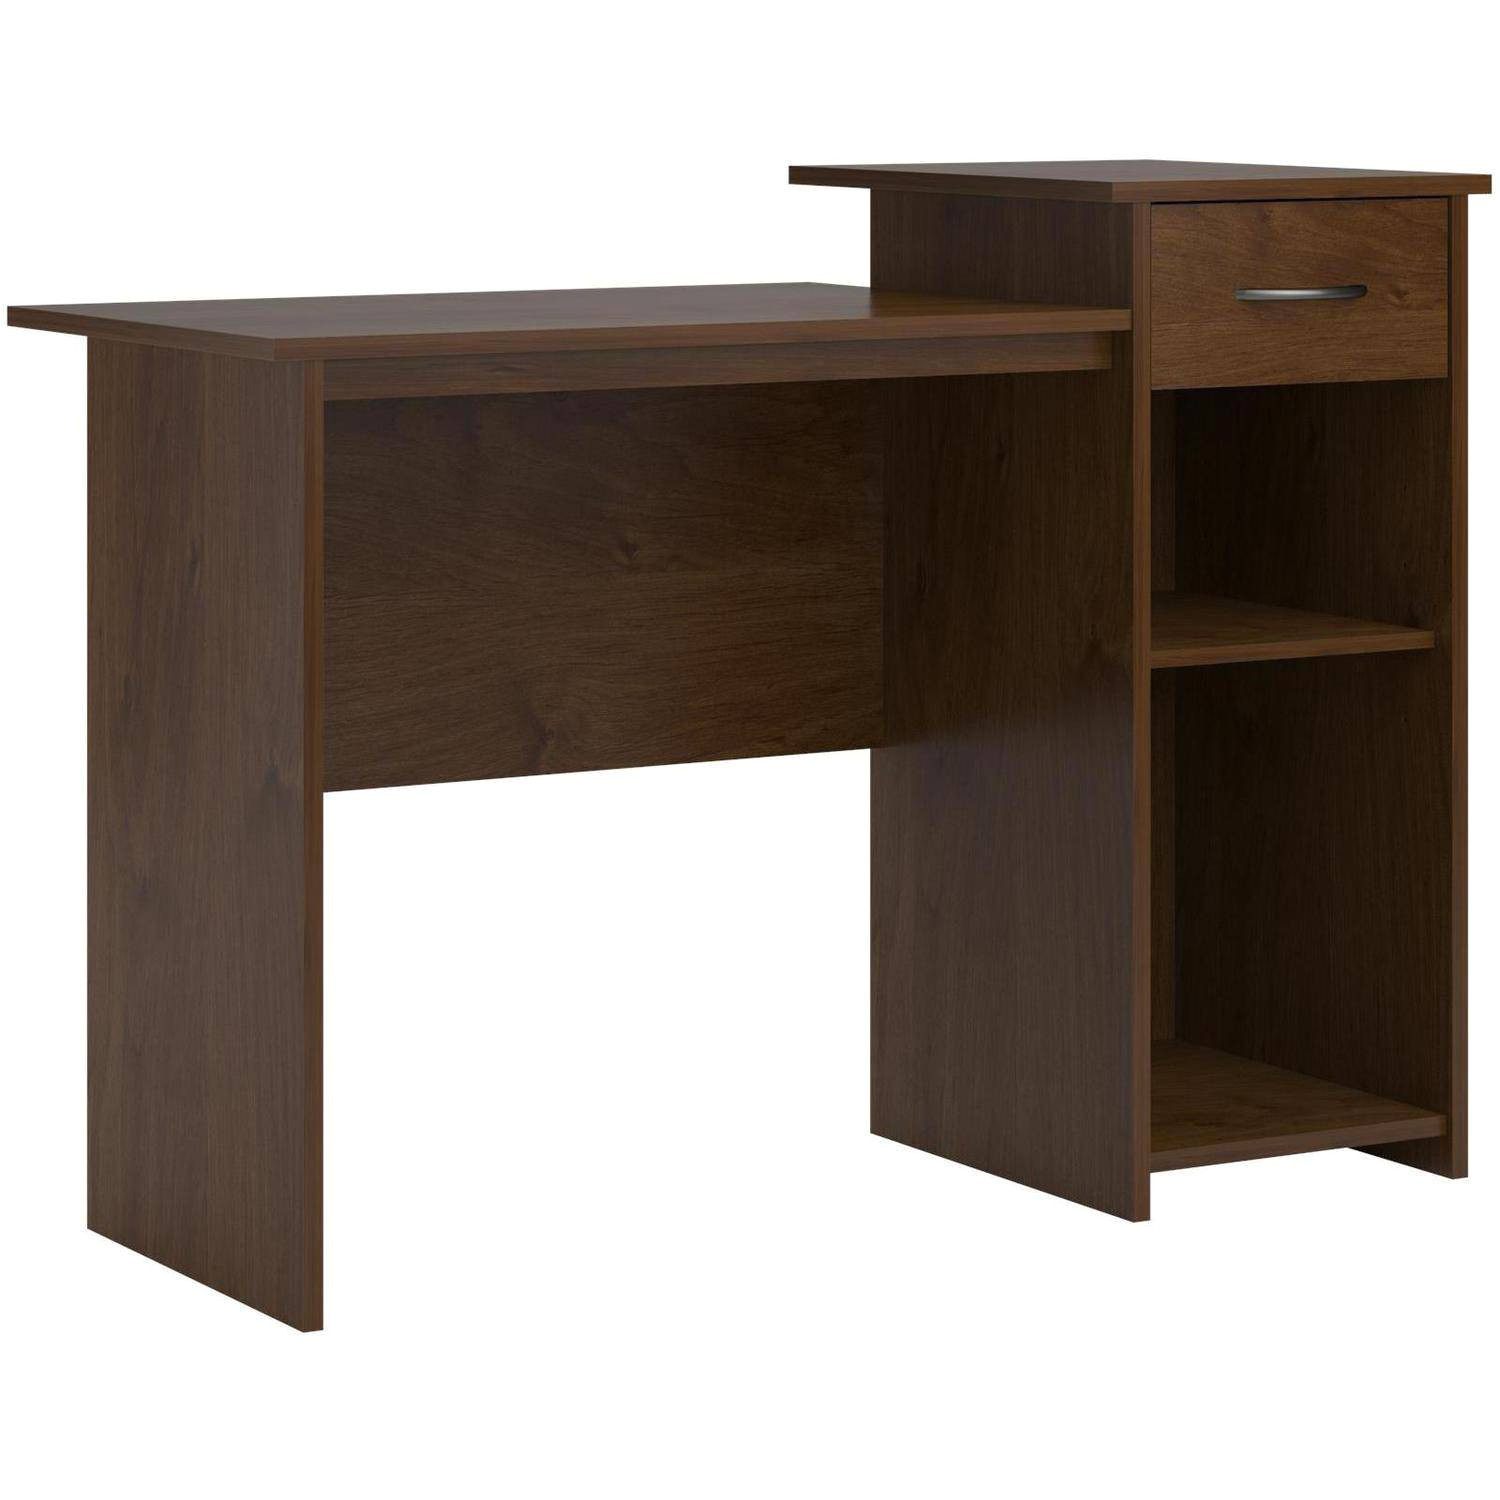 mainstays student desk with easy glide drawer multiple finishes walmart com